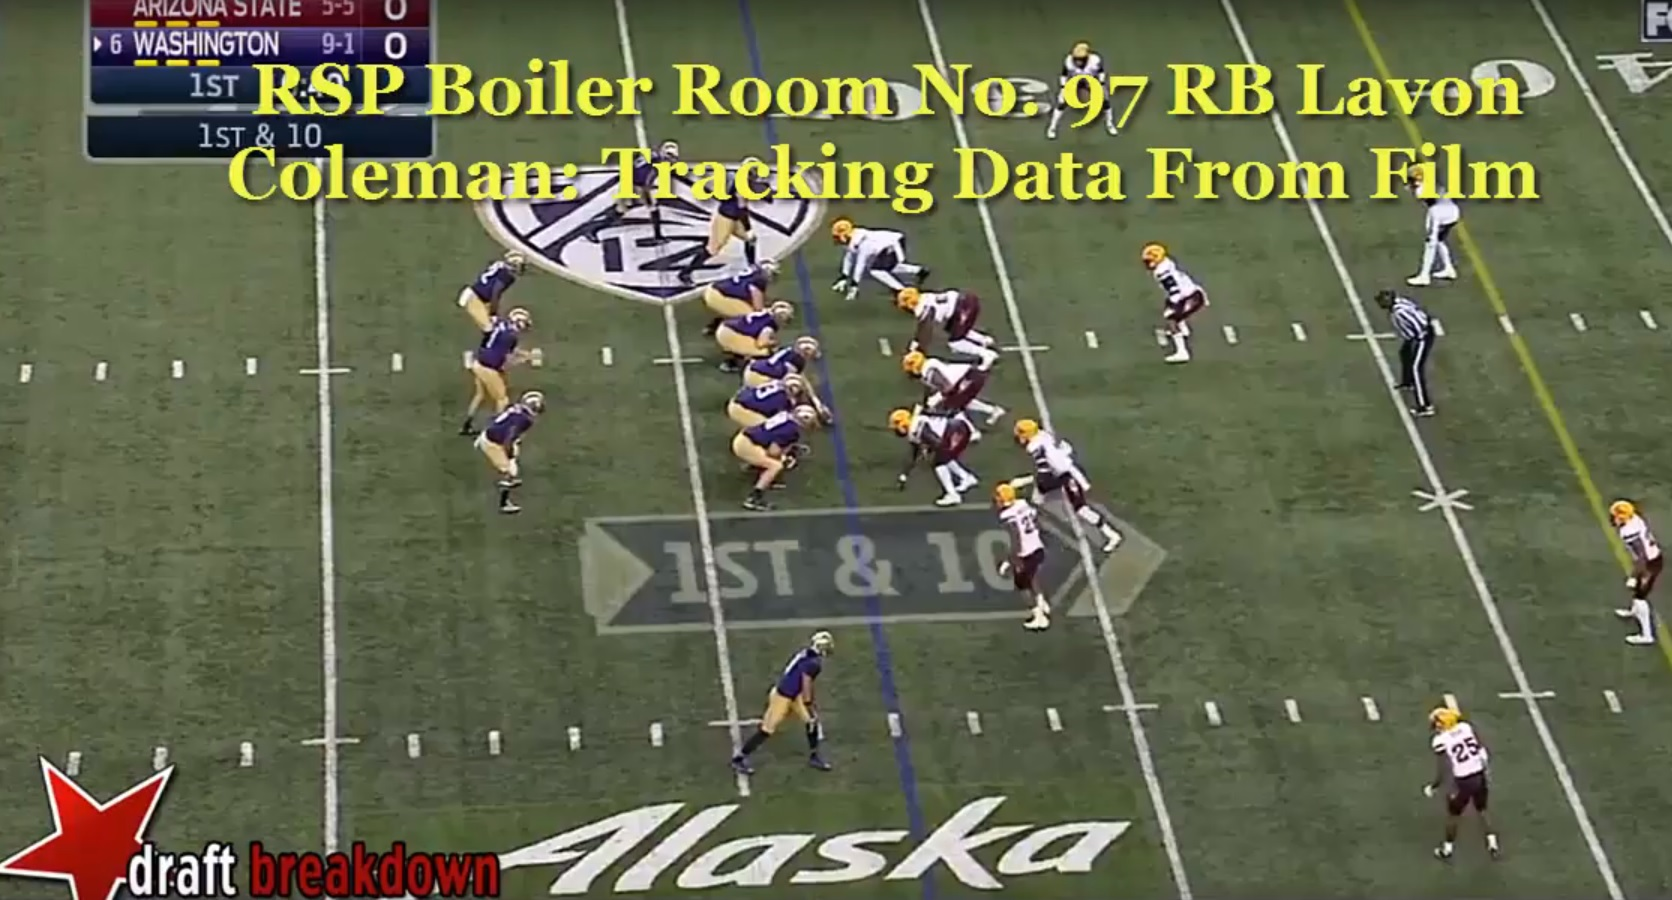 RSP Boiler Room No. 97 RB Lavon Coleman (Washington): Is This A Block?